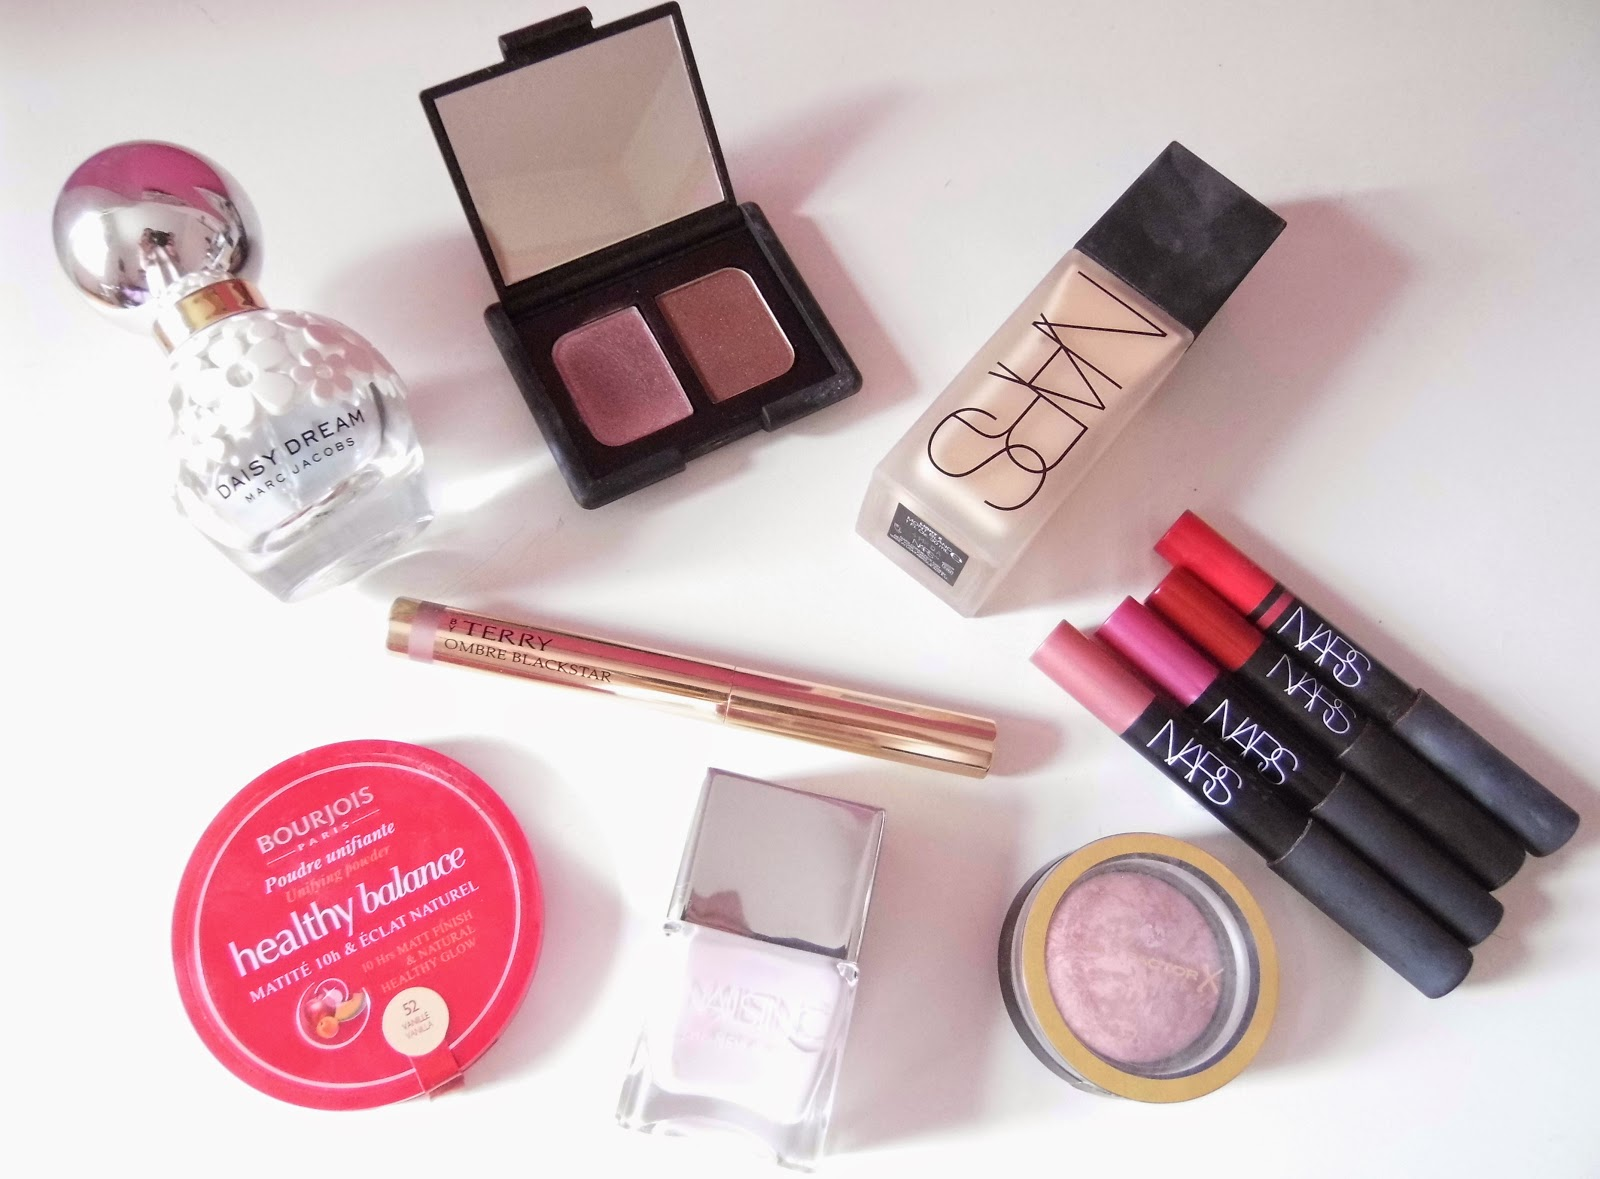 The Beauty Blogger Made Me Buy It. | LydiaLulu